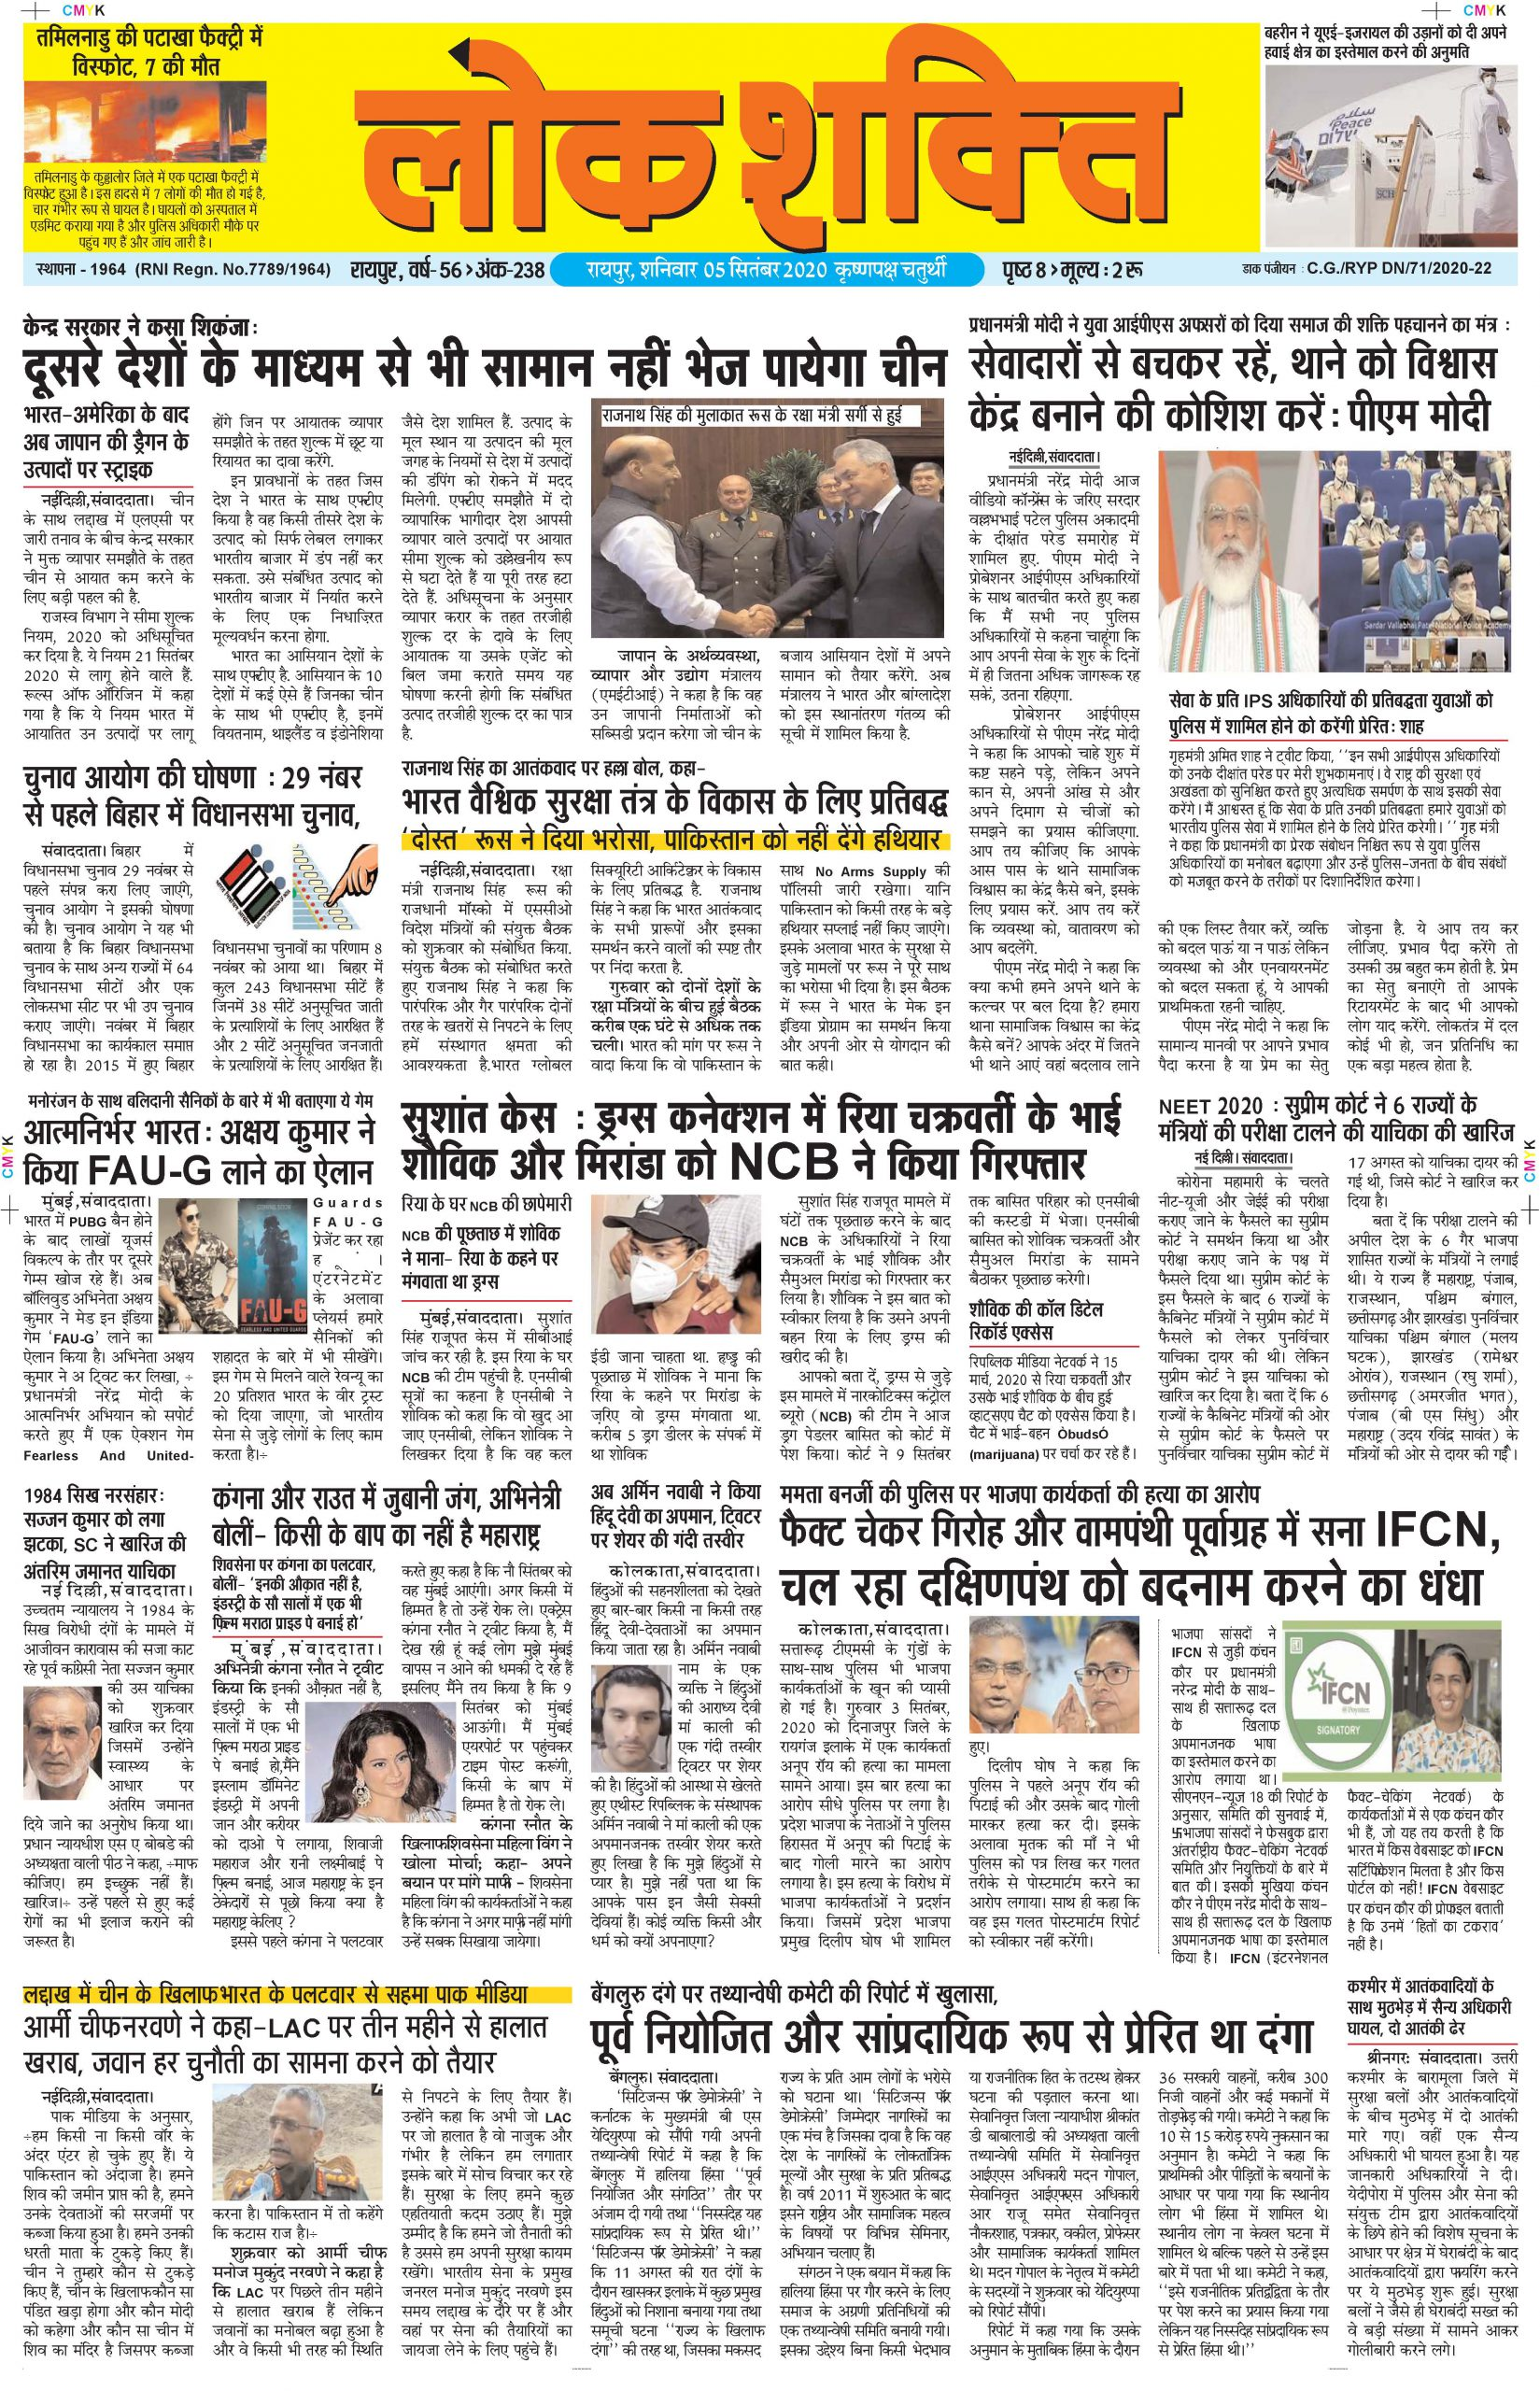 lokshakti- 05 sep 2020